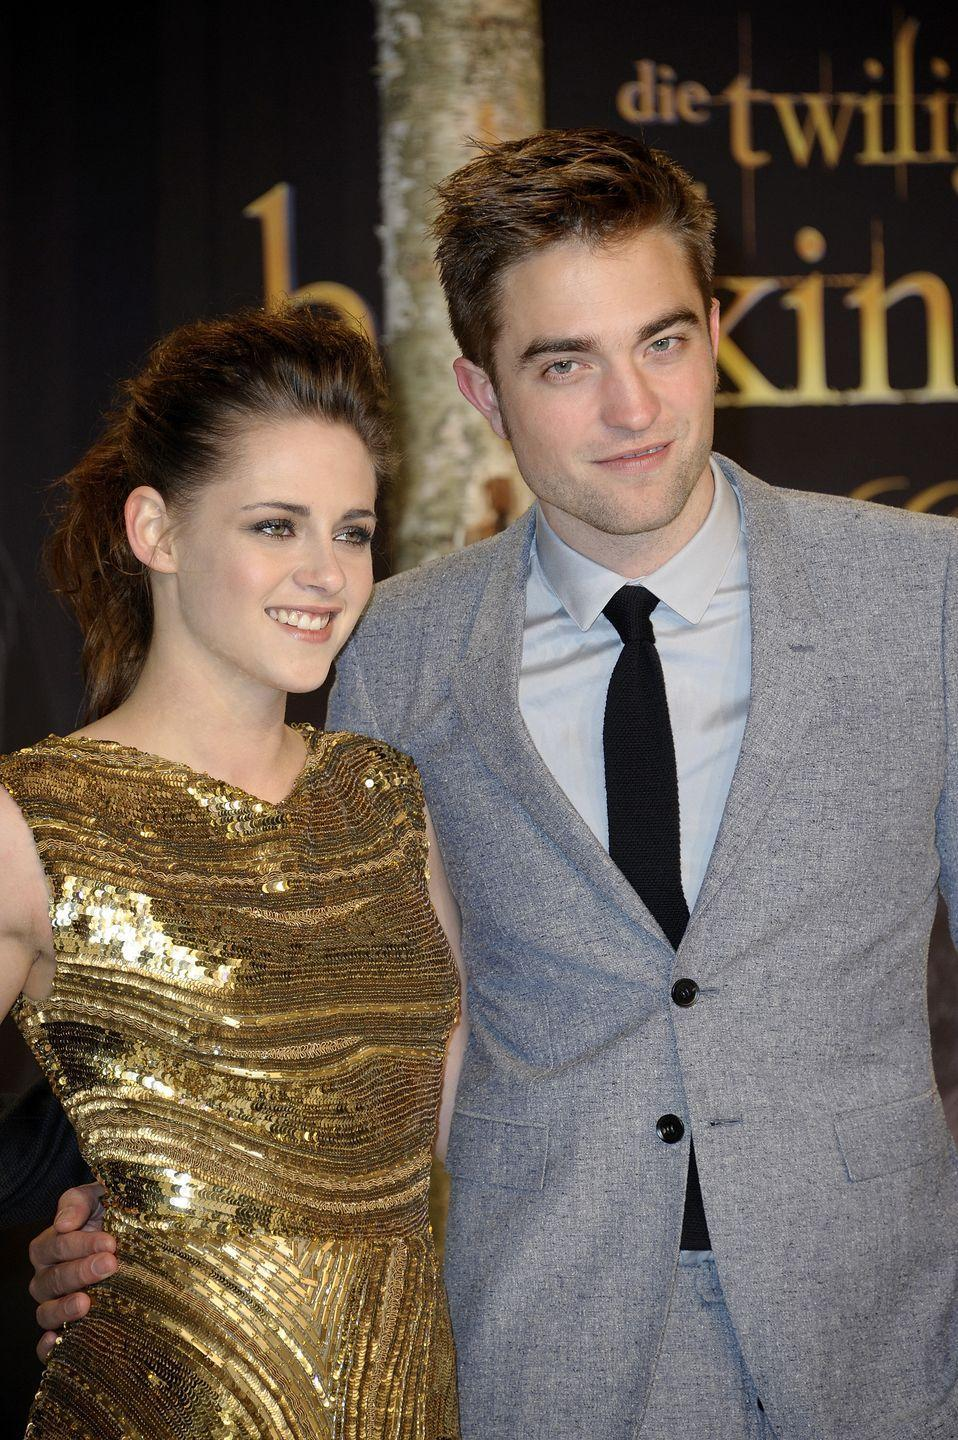 "<p>The on-screen, off-screen couple started dating in 2009 while filming the <em>Twilight </em>movies. After several years of dating and a short-break up in 2012, they broke up for good <a href=""http://www.huffingtonpost.com/entry/kristen-stewart-robert-pattinson-breakup-painful_us_55f814a0e4b0c2077efbf6de"" rel=""nofollow noopener"" target=""_blank"" data-ylk=""slk:in 2013"" class=""link rapid-noclick-resp"">in 2013</a>, just before having to do <a href=""http://www.mirror.co.uk/3am/celebrity-news/robert-pattinson-kristen-stewart-timeline-2085359"" rel=""nofollow noopener"" target=""_blank"" data-ylk=""slk:press appearances"" class=""link rapid-noclick-resp"">press appearances</a> together leading up the premiere of the last <em>Twilight</em> installment, <em>Breaking Dawn Part 2.</em></p>"